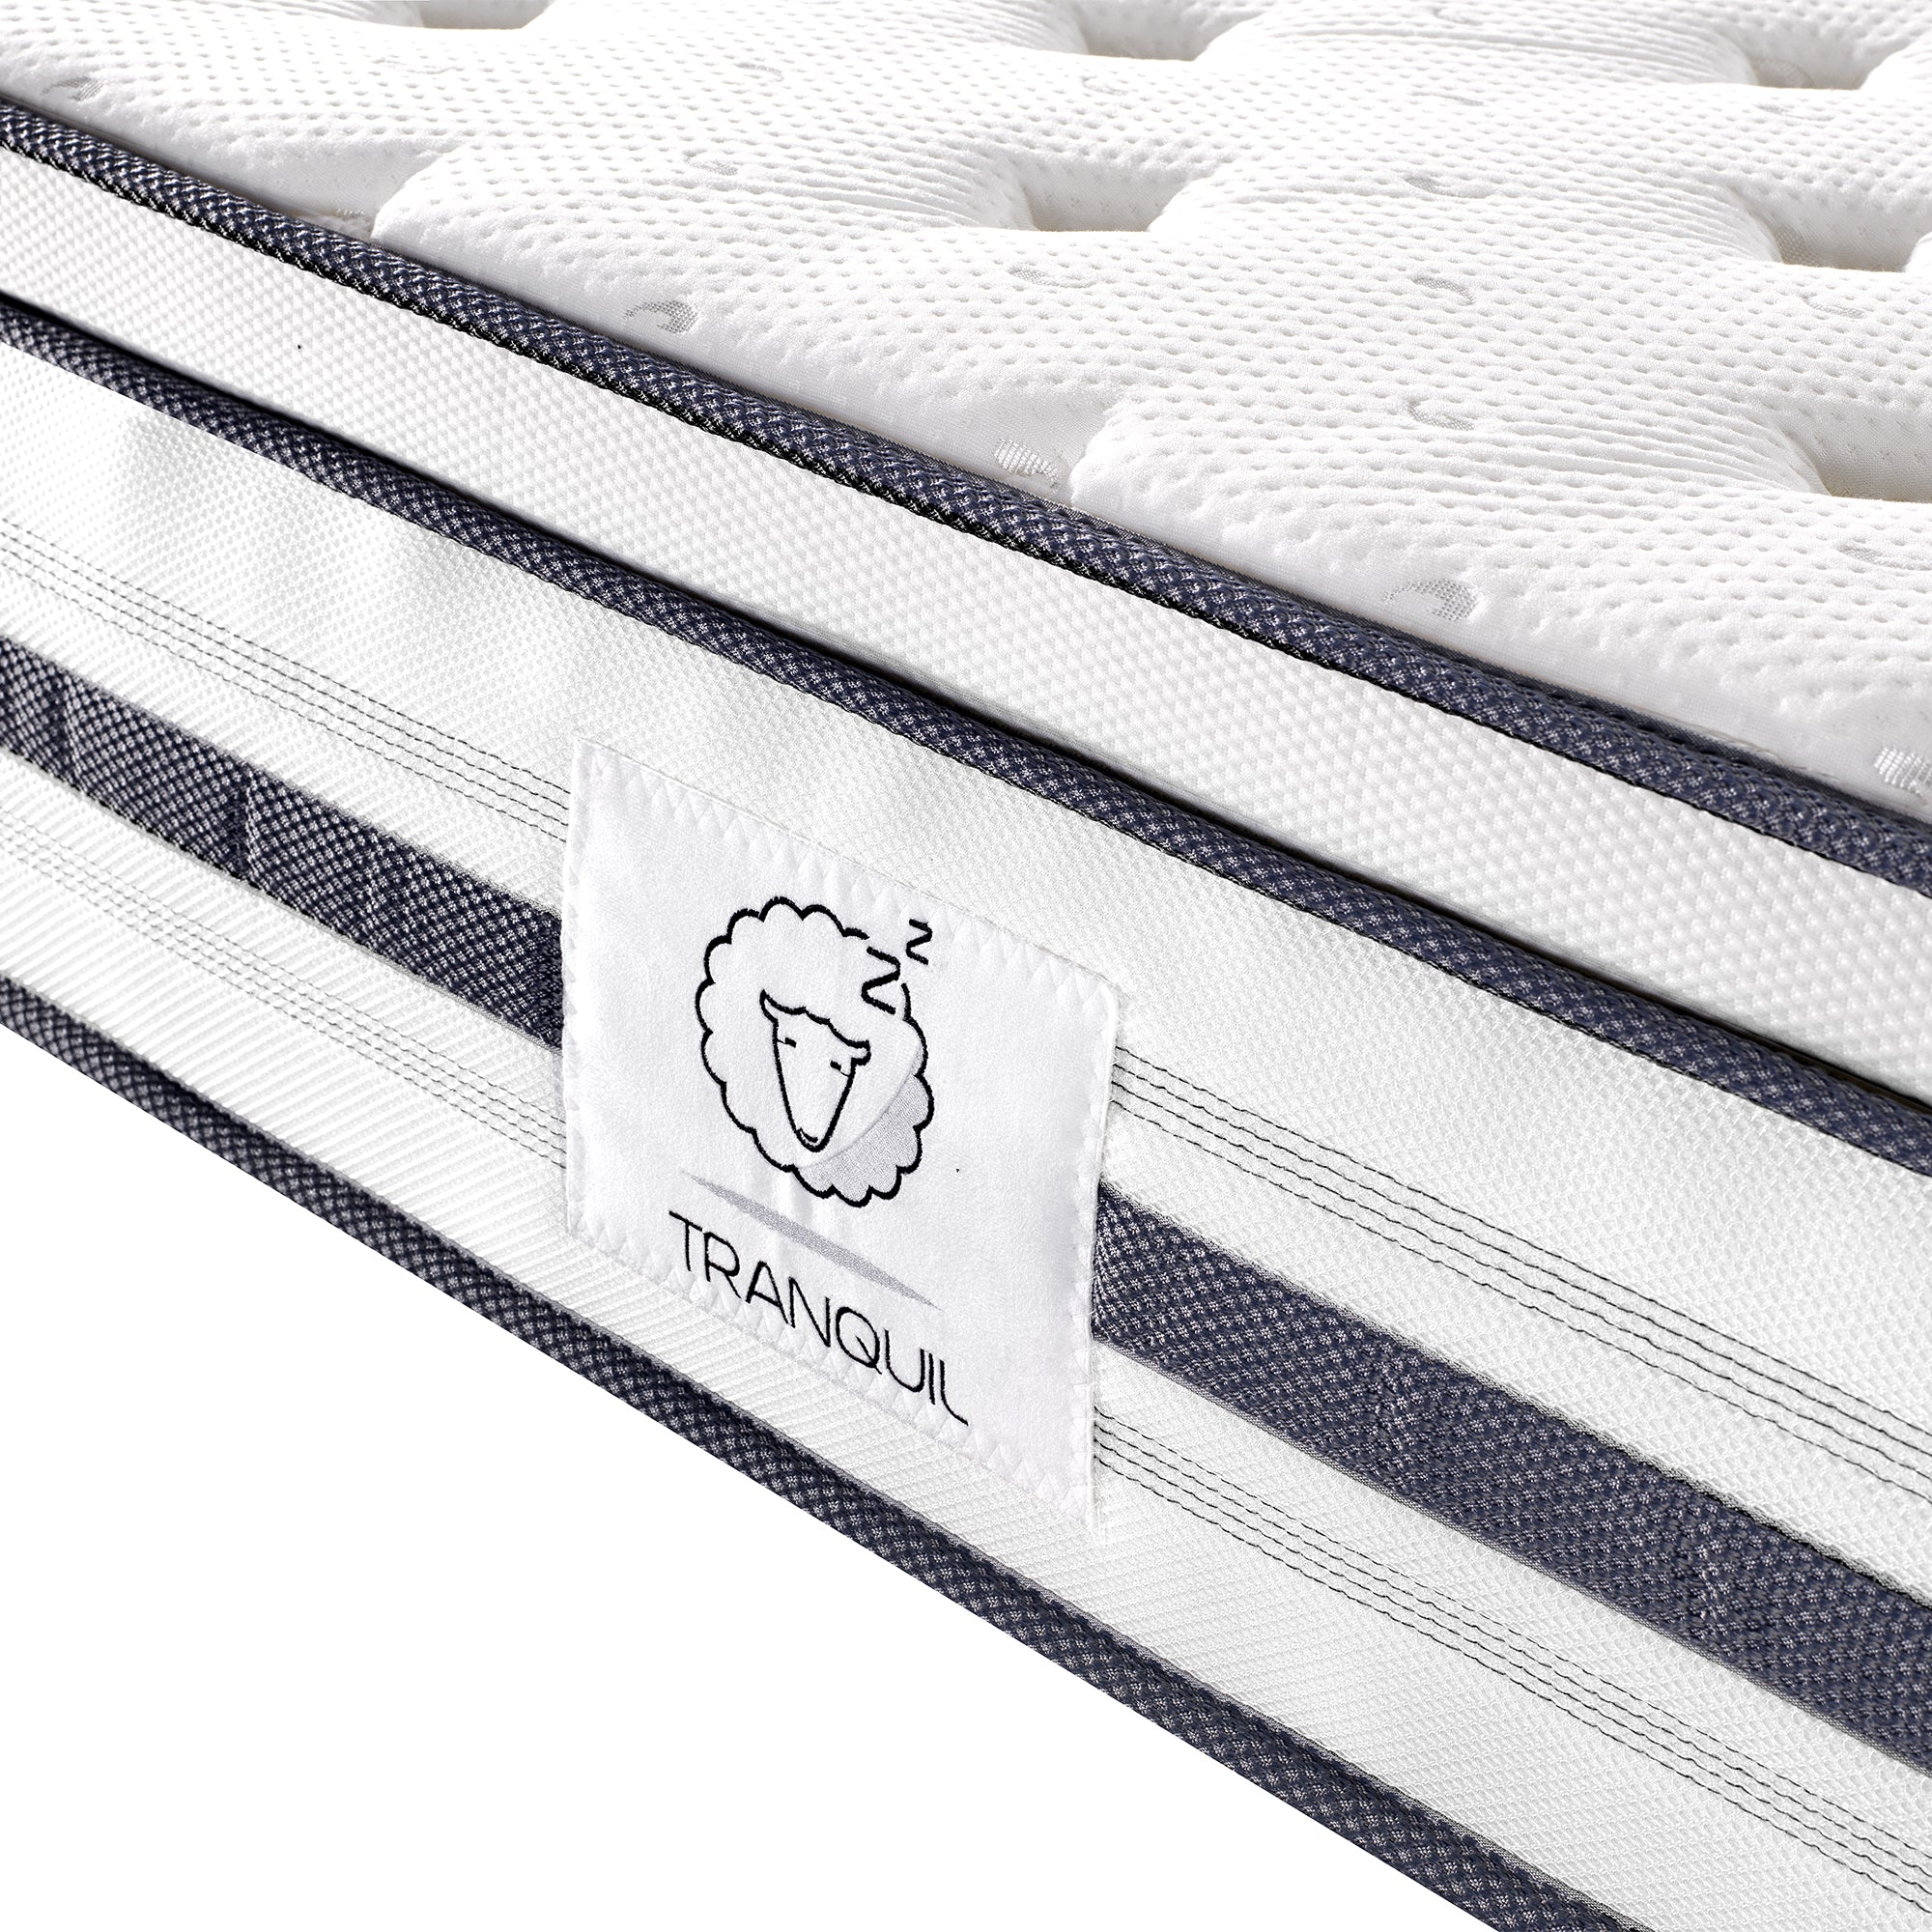 TRANQUIL Mattress TRA-03, Memory Foam, 7- Zone Pocket Springs with Euro Top